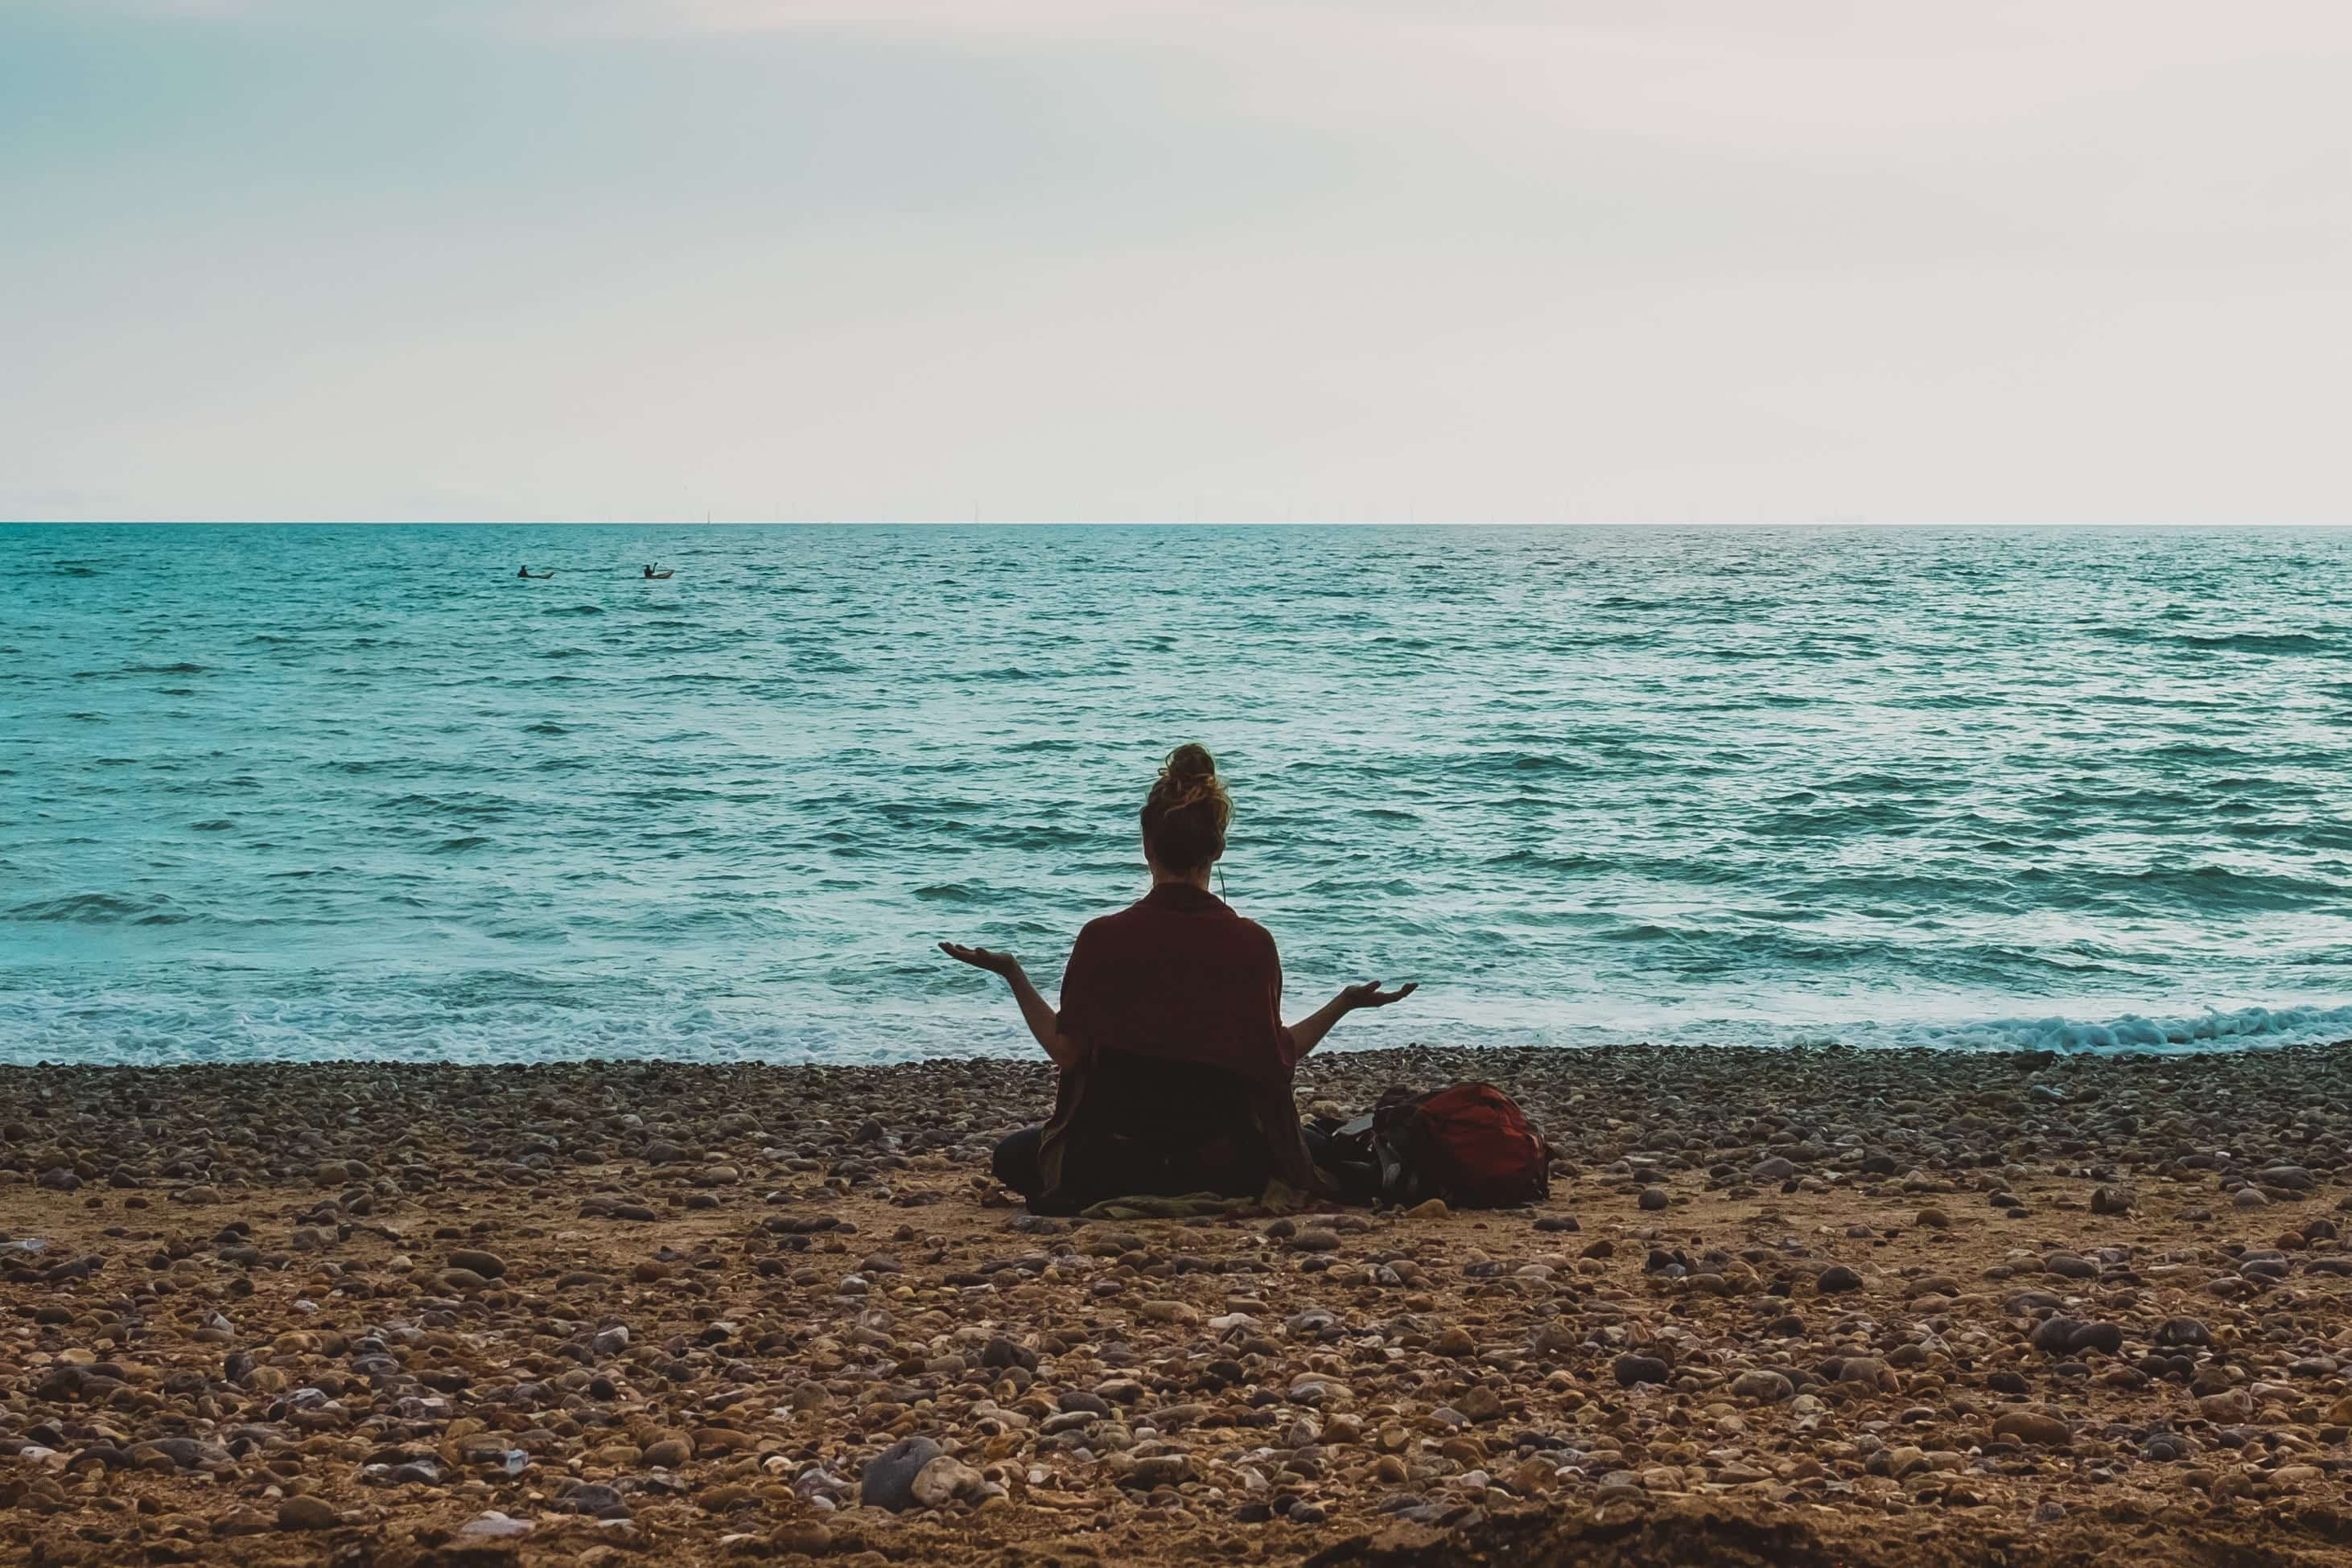 Woman meditating by a lakeshore; image by Dardan, via unsplash.com.